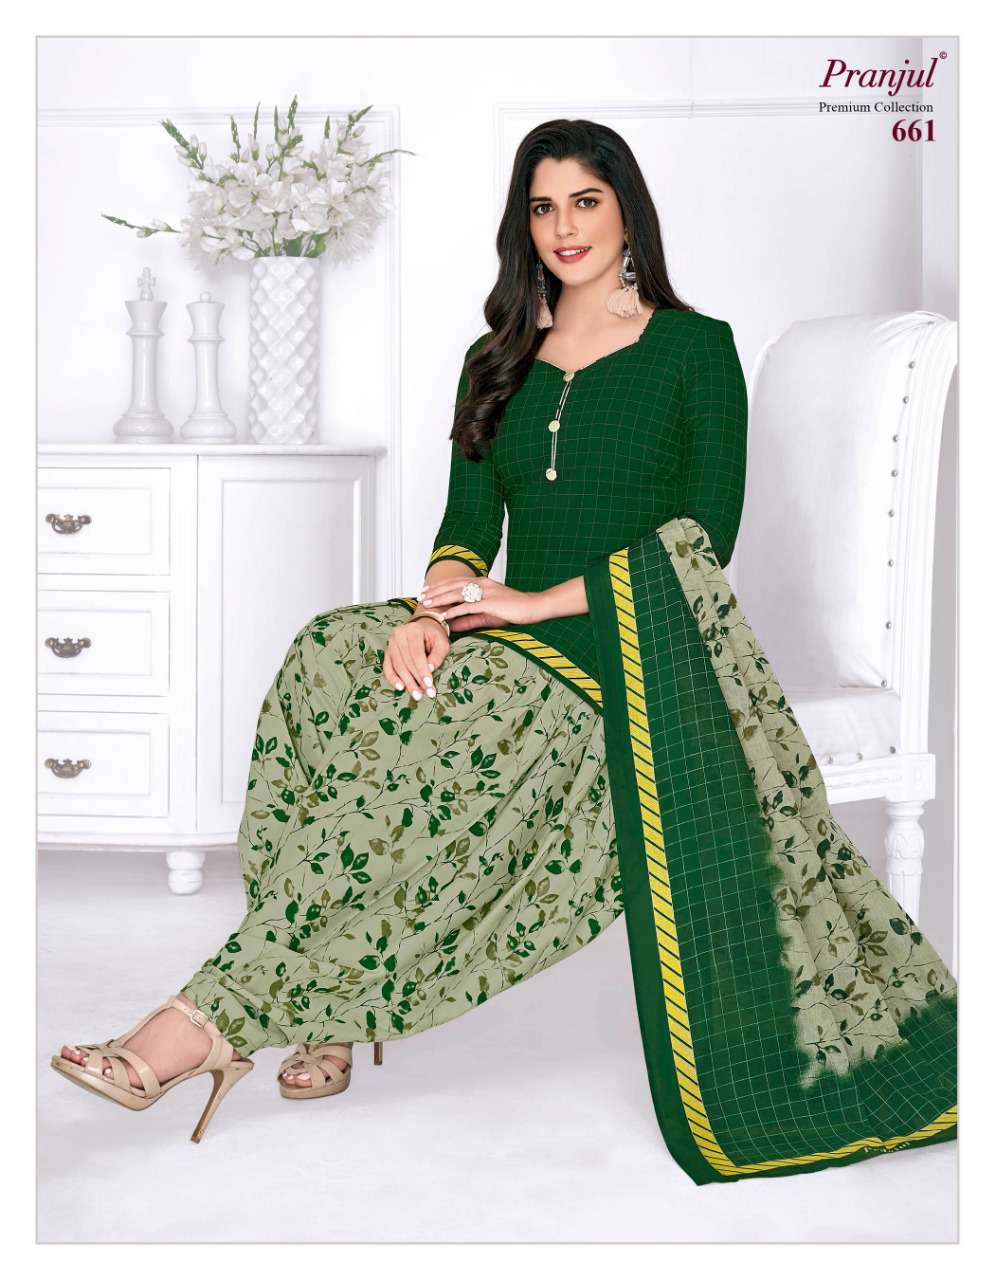 Pranjul Priyanka Vol 6 Unstitched Salwar Suit Wholesale Catalog 18 Pcs 2 - Pranjul Priyanka Vol 6 Premium Collection Unstitched Suit Wholesale Catalog 18 Pcs